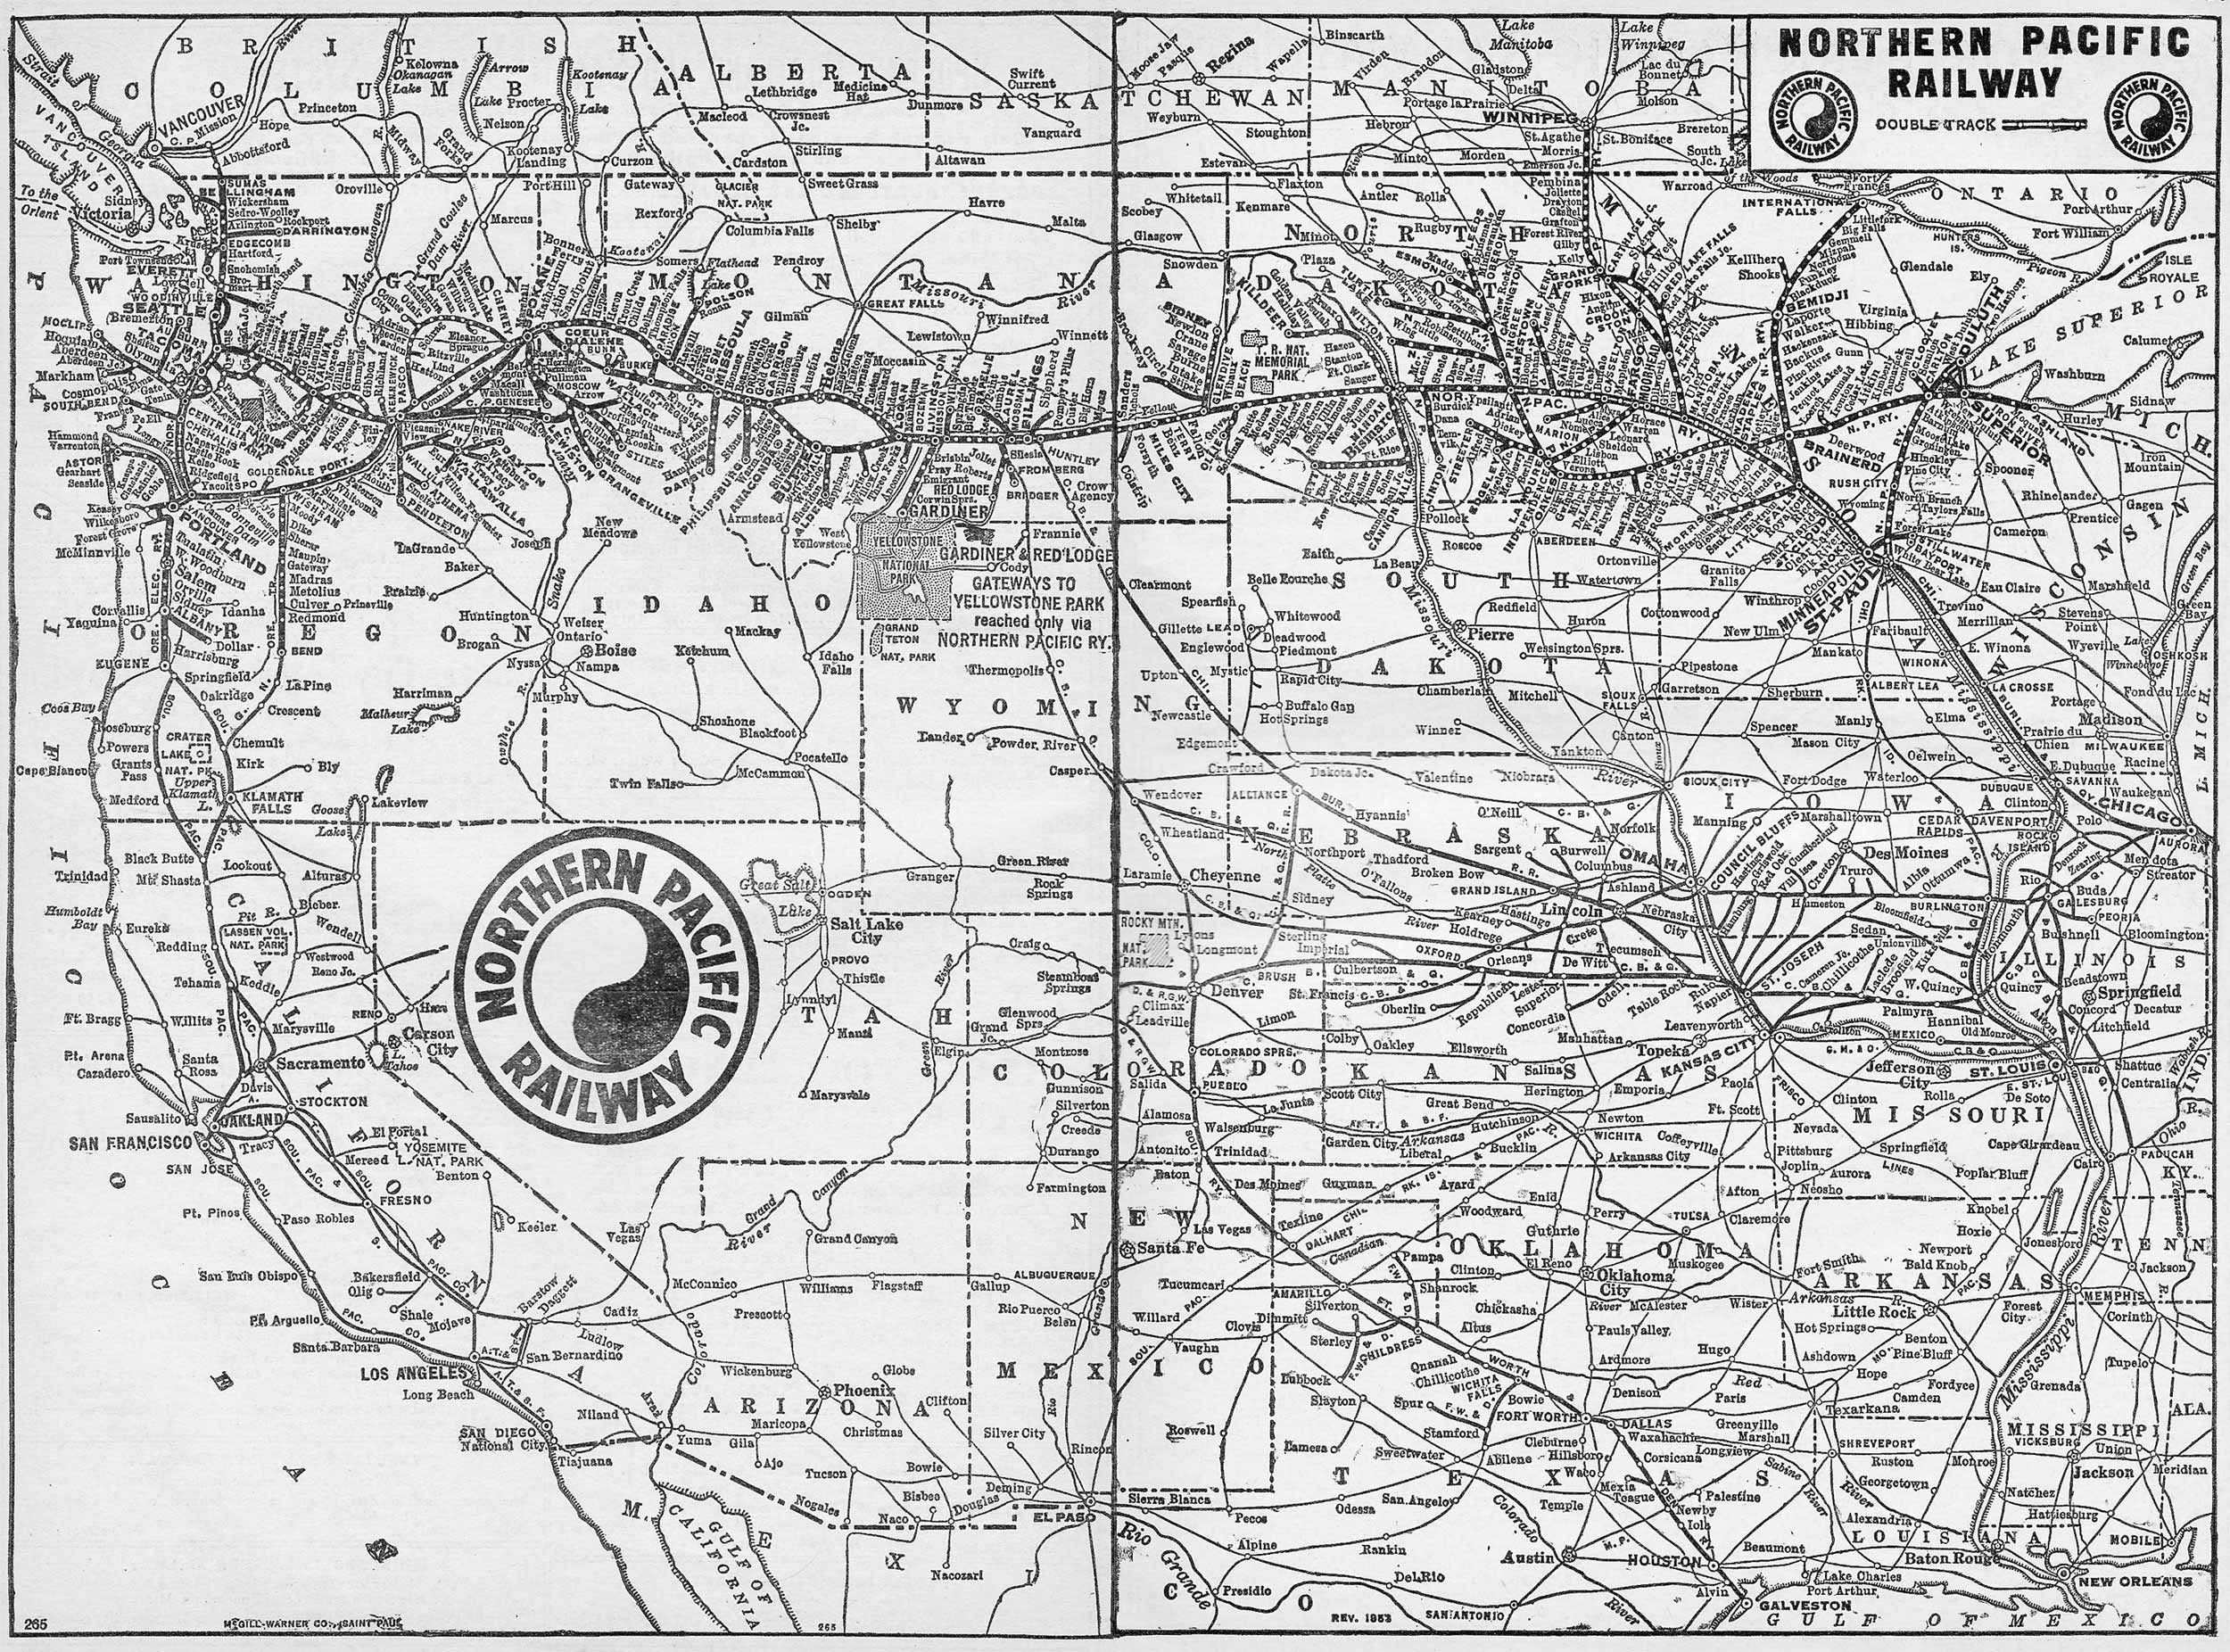 The Northern Pacific Railway | NP in 2019 | Bnsf railway ... on ferromex map, texas railroad tracks map, union pacific railroad map, spokane portland and seattle railway map, kansas city southern railroad map, csx railroad map, illinois central railroad route map, bnsf map, burlington route map, florida railroad map, milwaukee electric railroad lines map, riyadh metro map, milwaukee road map, milwaukee railroad route map, norfolk southern railroad track map, b&o railroad map, central pacific rail lines map, metropolitan milwaukee railroad tracks map, dakota minnesota and eastern railroad map, berlin germany capital map,